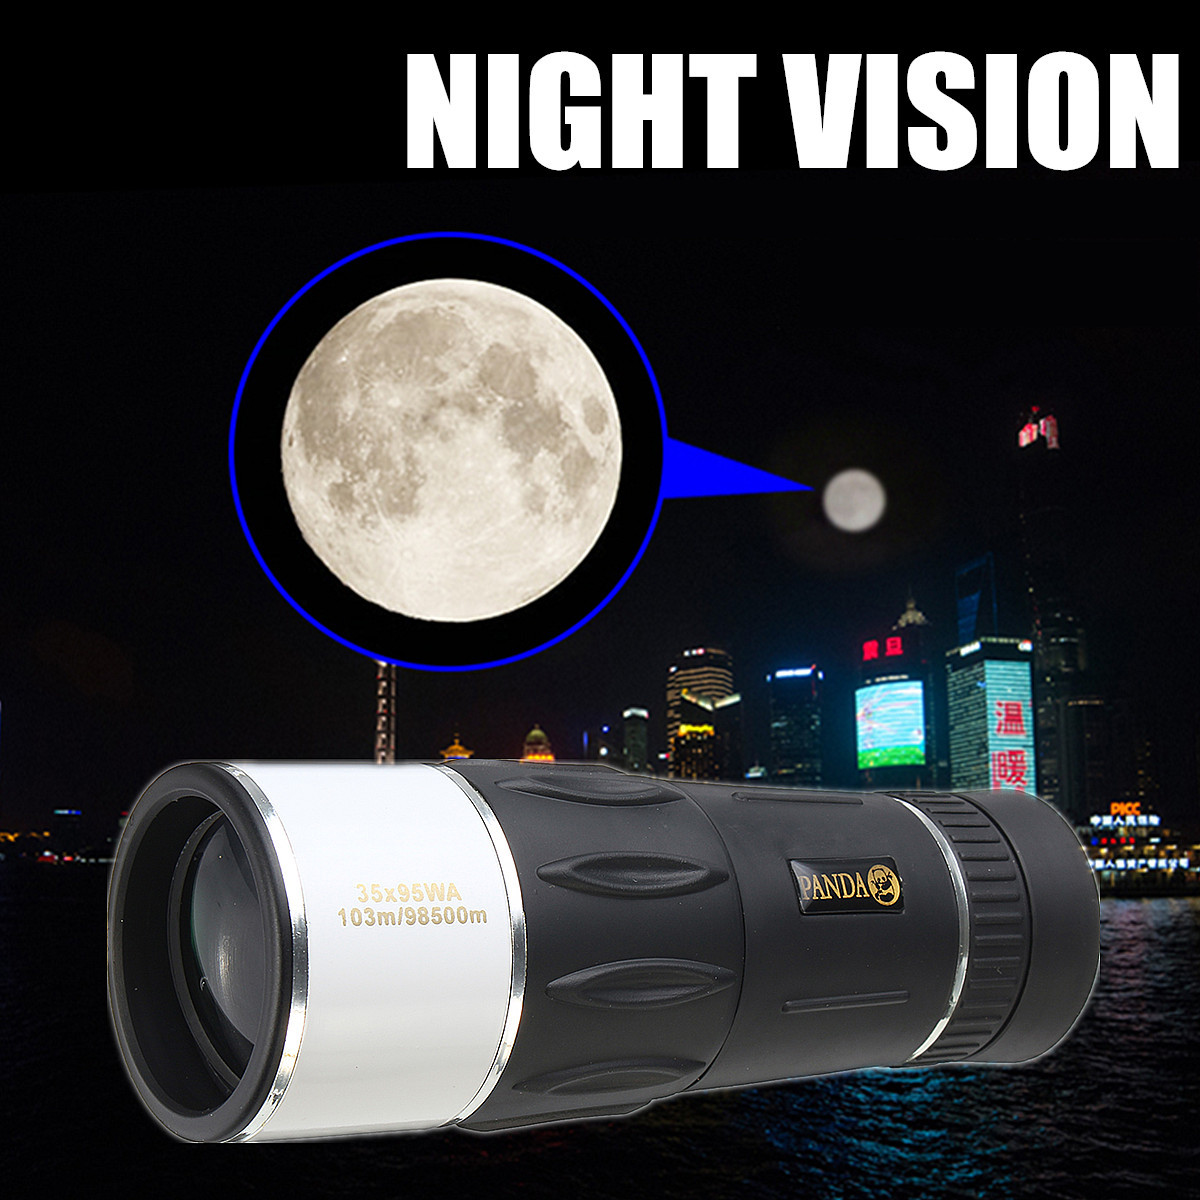 35x95 WA Night Vision Monocular Telescope HD Scope Adjustable Wide Angle Hunting Black+White Black High Light Transmittance35x95 WA Night Vision Monocular Telescope HD Scope Adjustable Wide Angle Hunting Black+White Black High Light Transmittance